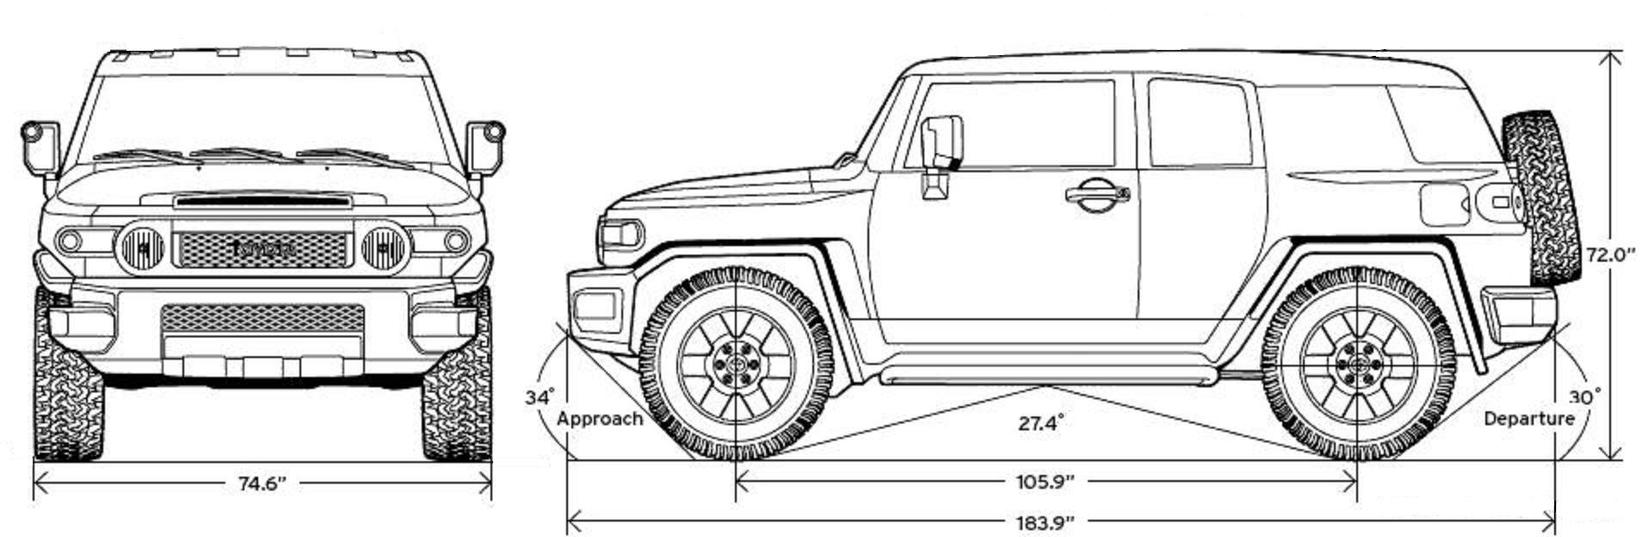 Toyota FJ Cruiser Blueprint - Download free blueprint for ...